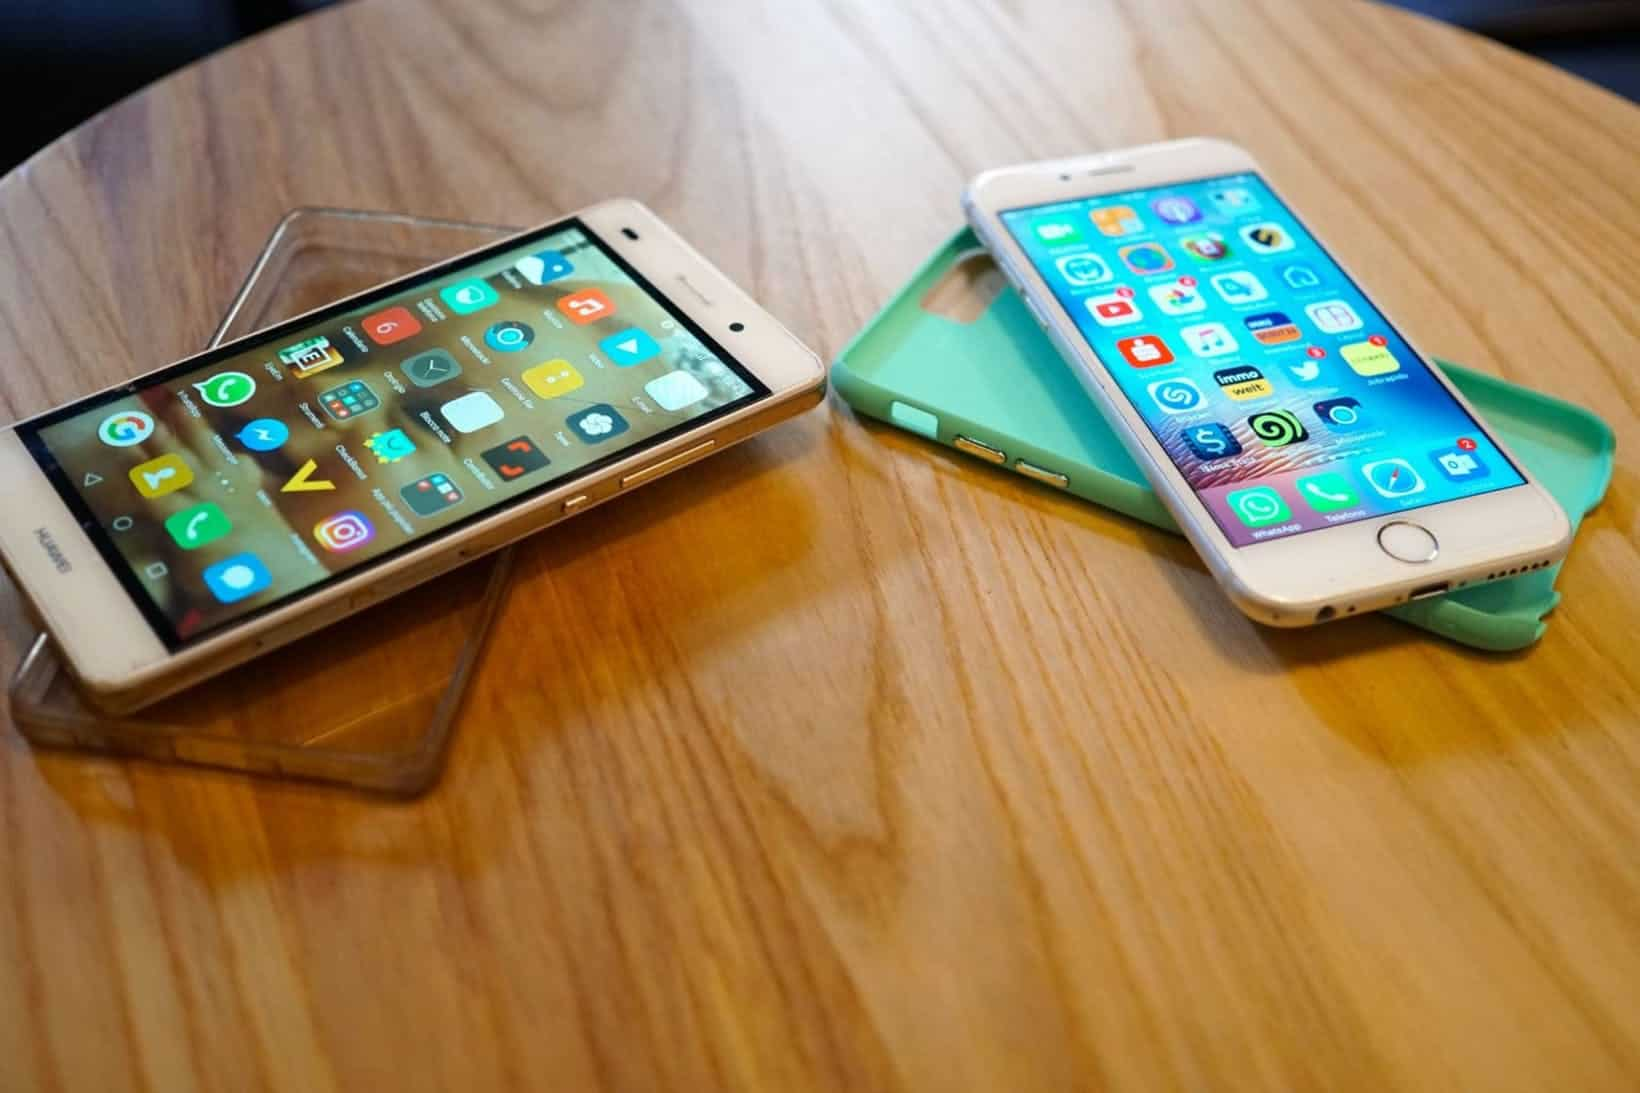 This Smartphone Brand Has Overtaken Apple To Become The Second Most-Popular Handset In The World